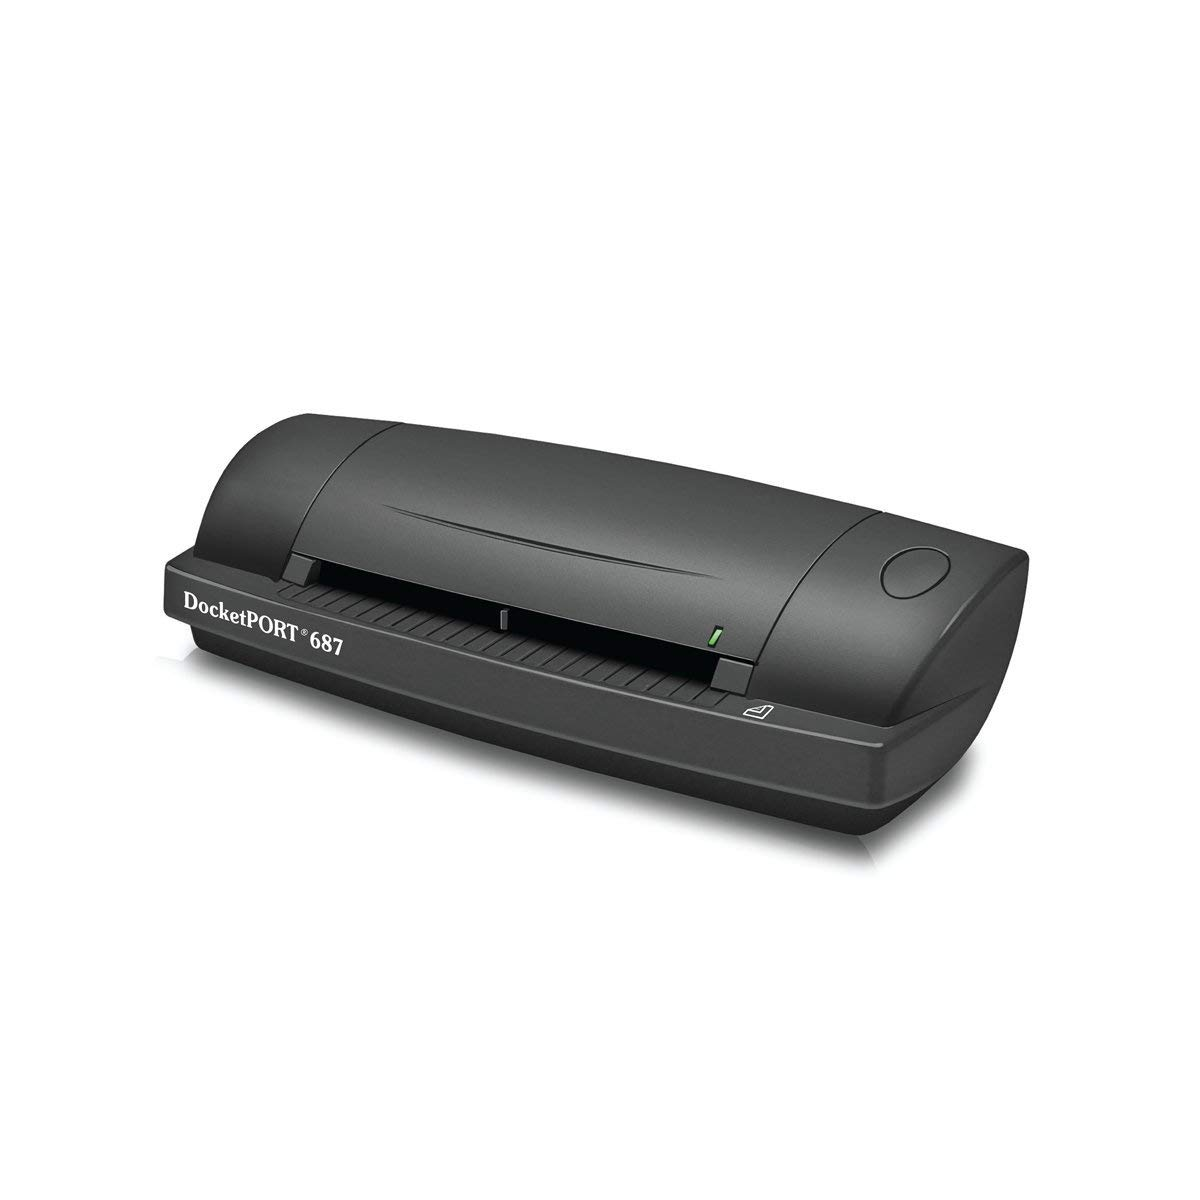 DocketPort Duplex DP687 Scanner